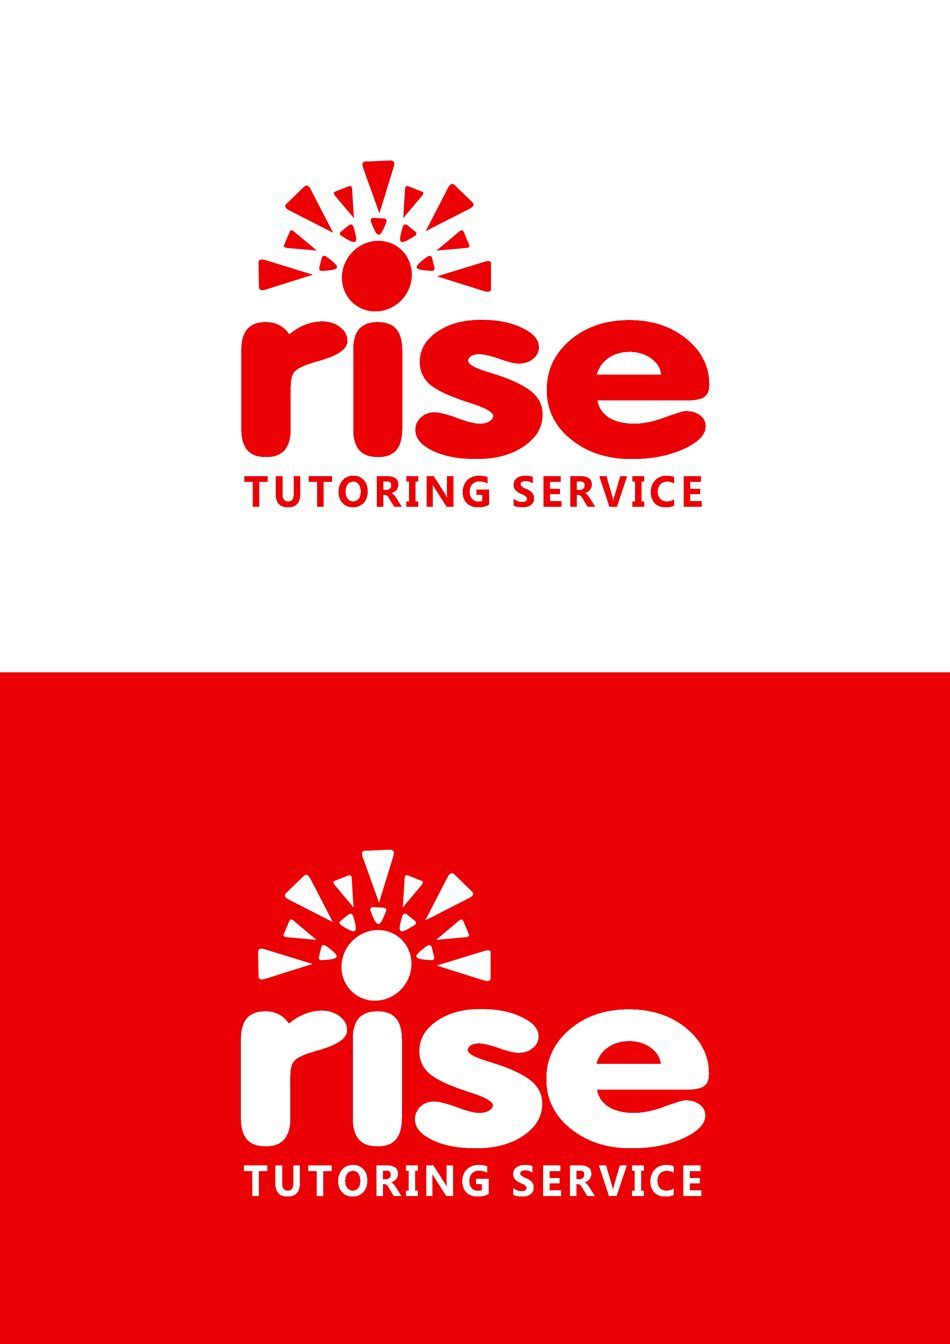 Logo Design by Respati Himawan - Entry No. 216 in the Logo Design Contest Imaginative Logo Design for Rise Tutoring Service.